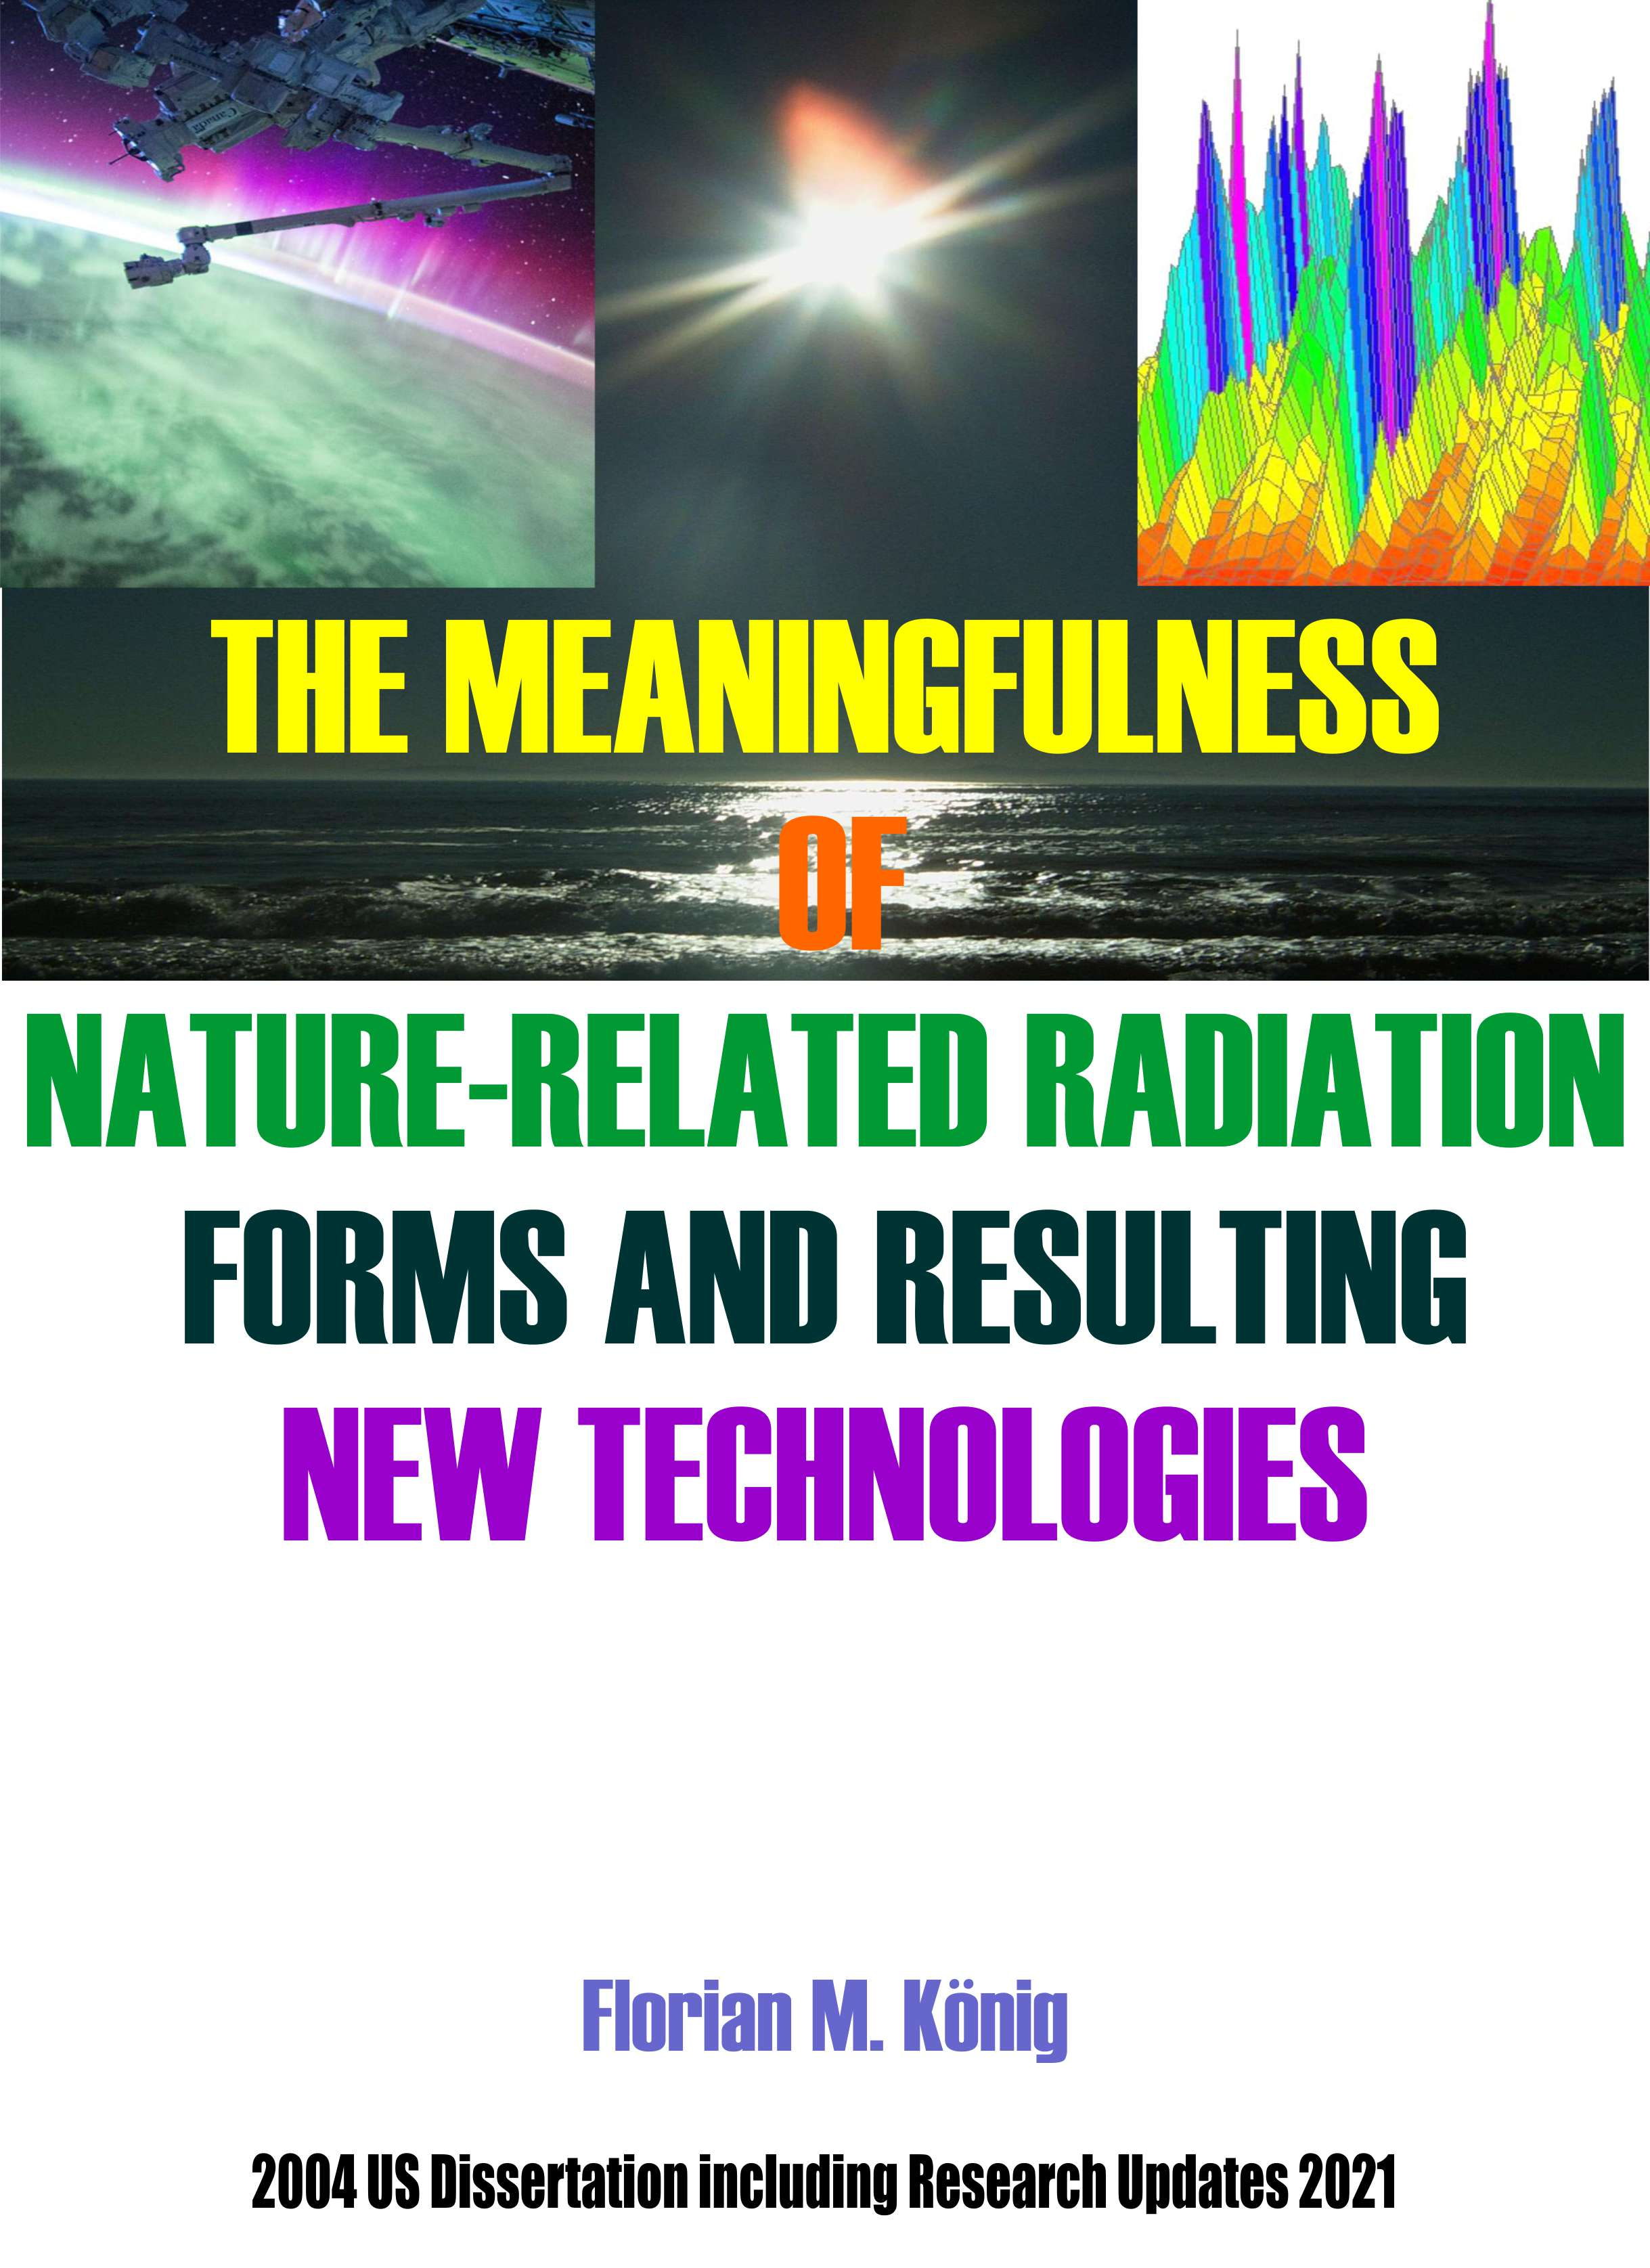 cover --- THE MEANINGFULNESS OF NATURE-RELATED RADIATION FORMS AND RESULTING NEW TECHNOLOGIES; released 3.2021, e-book ISBN:  978-3-9823116-0-9